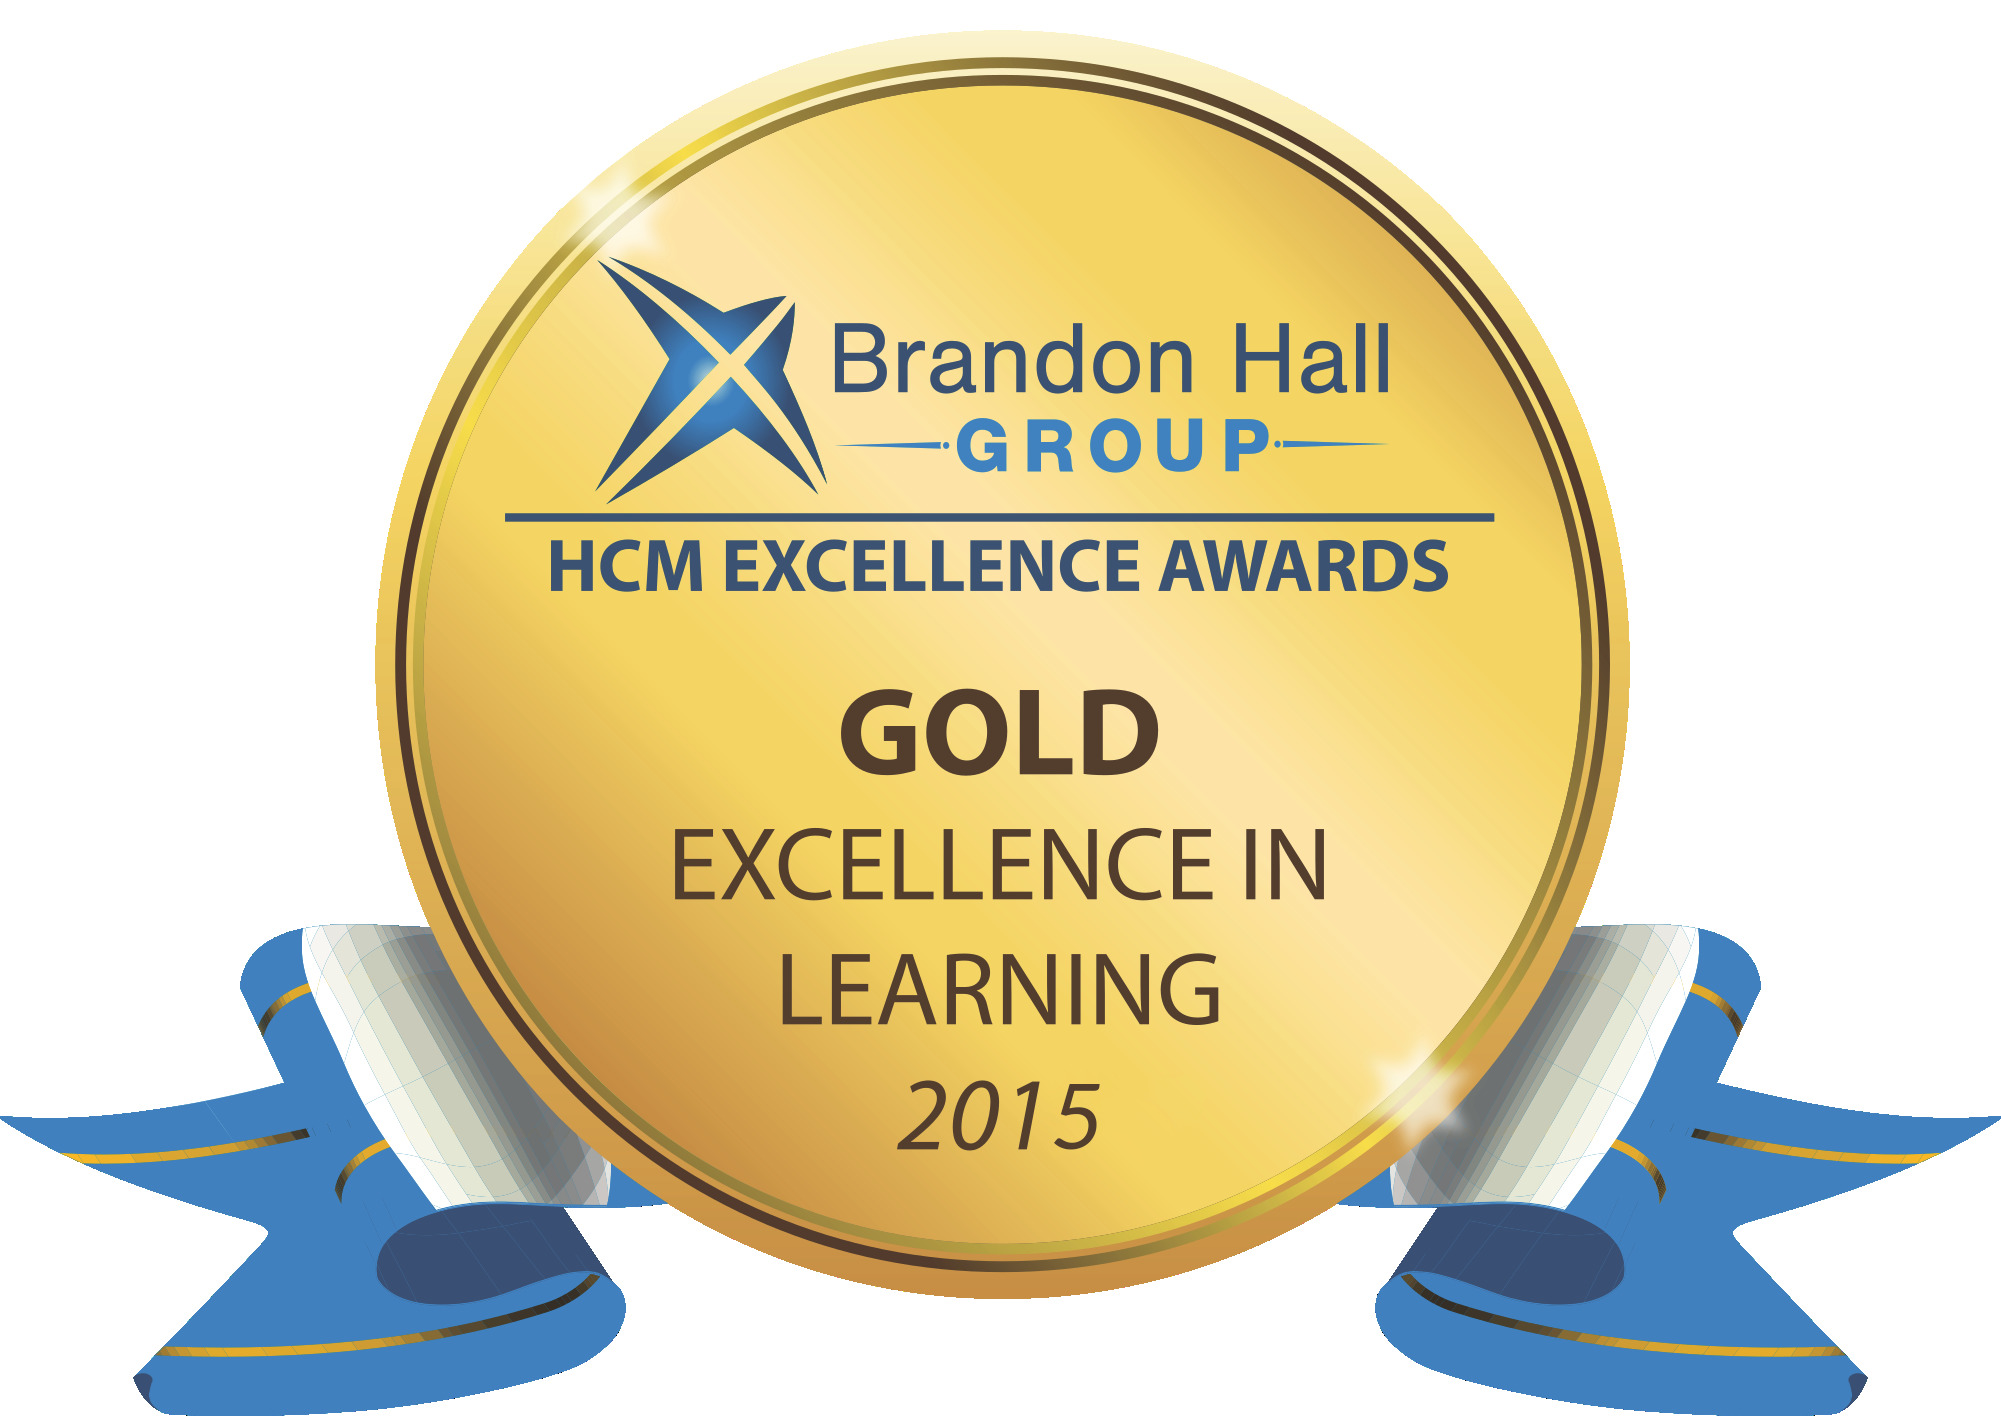 GOLD excellence in learning